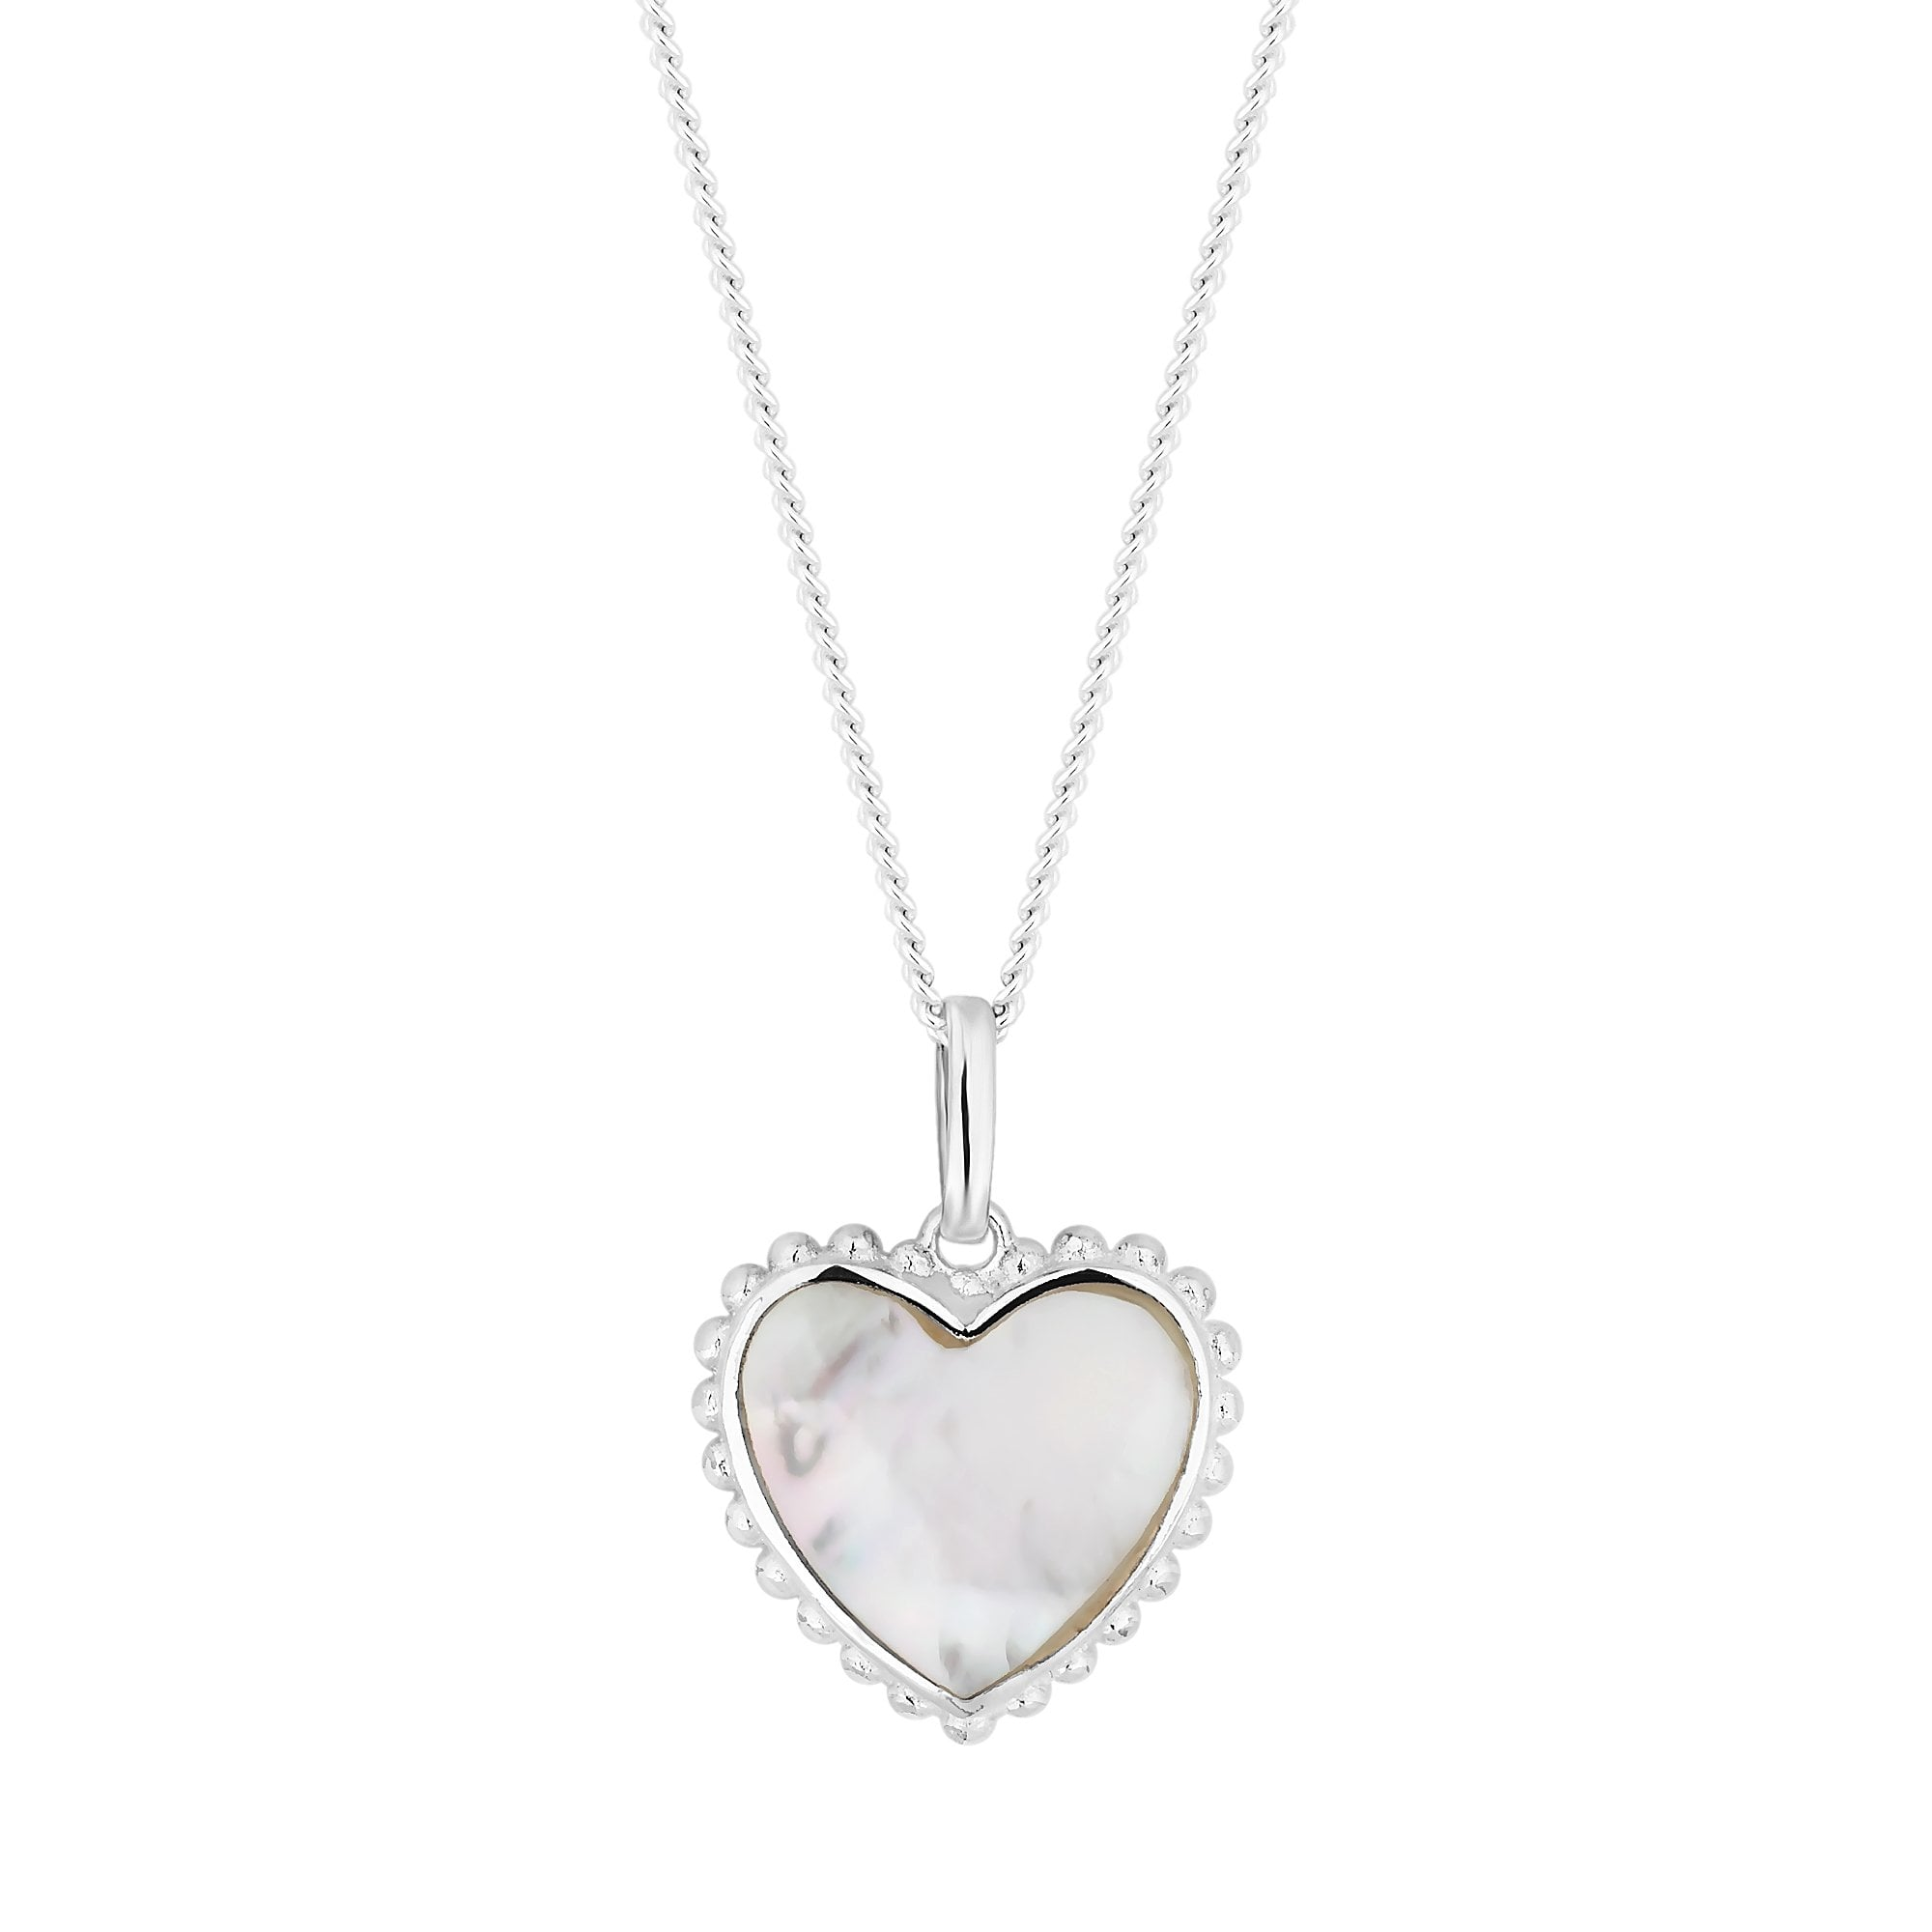 Simply silver sterling silver mother of pearl heart pendant necklace sterling silver mother of pearl heart pendant necklace aloadofball Image collections